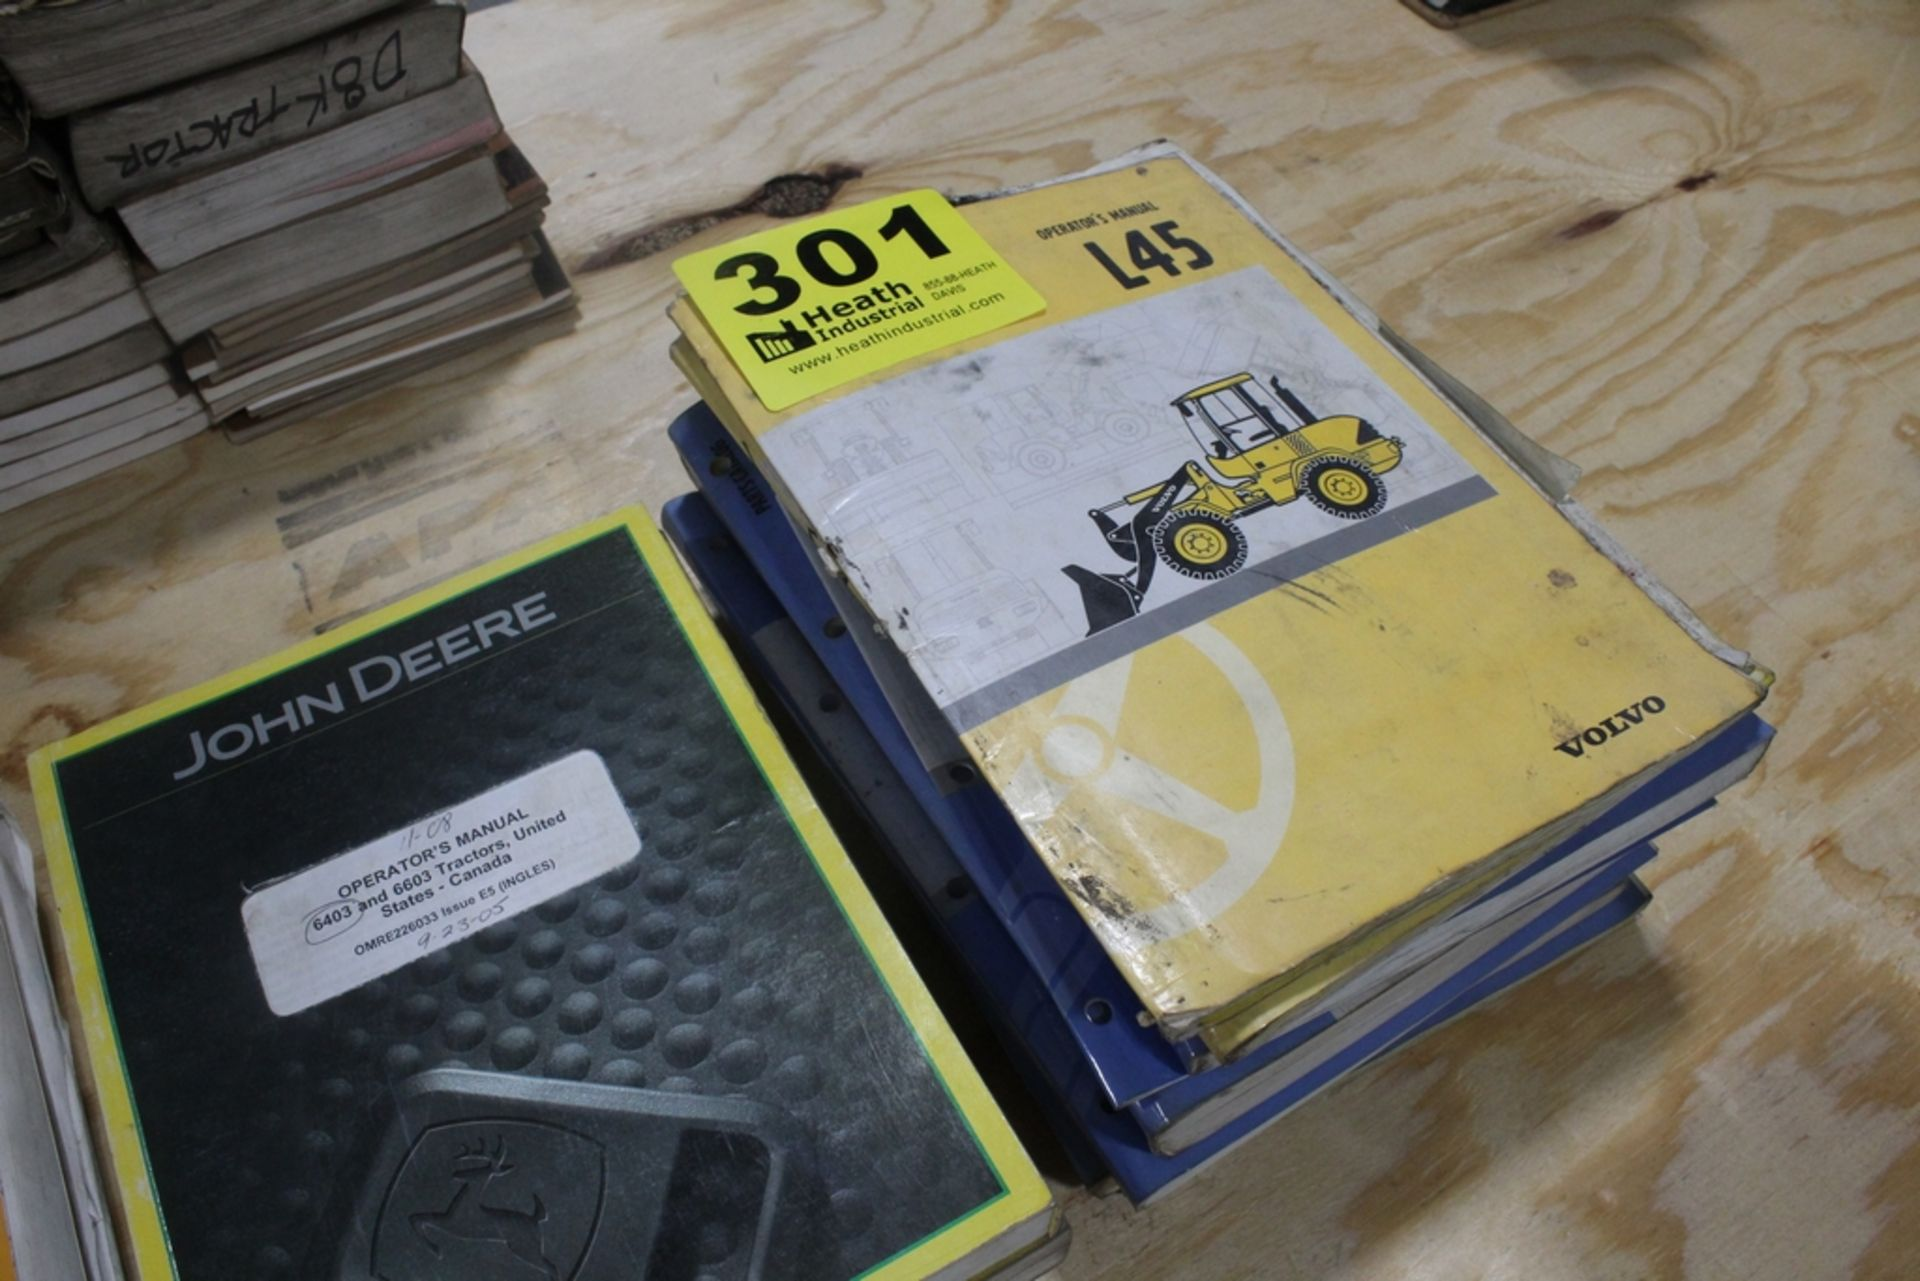 ASSORTED JOHN DEERE AND VOLVO SERVICE MANUALS - Image 3 of 3